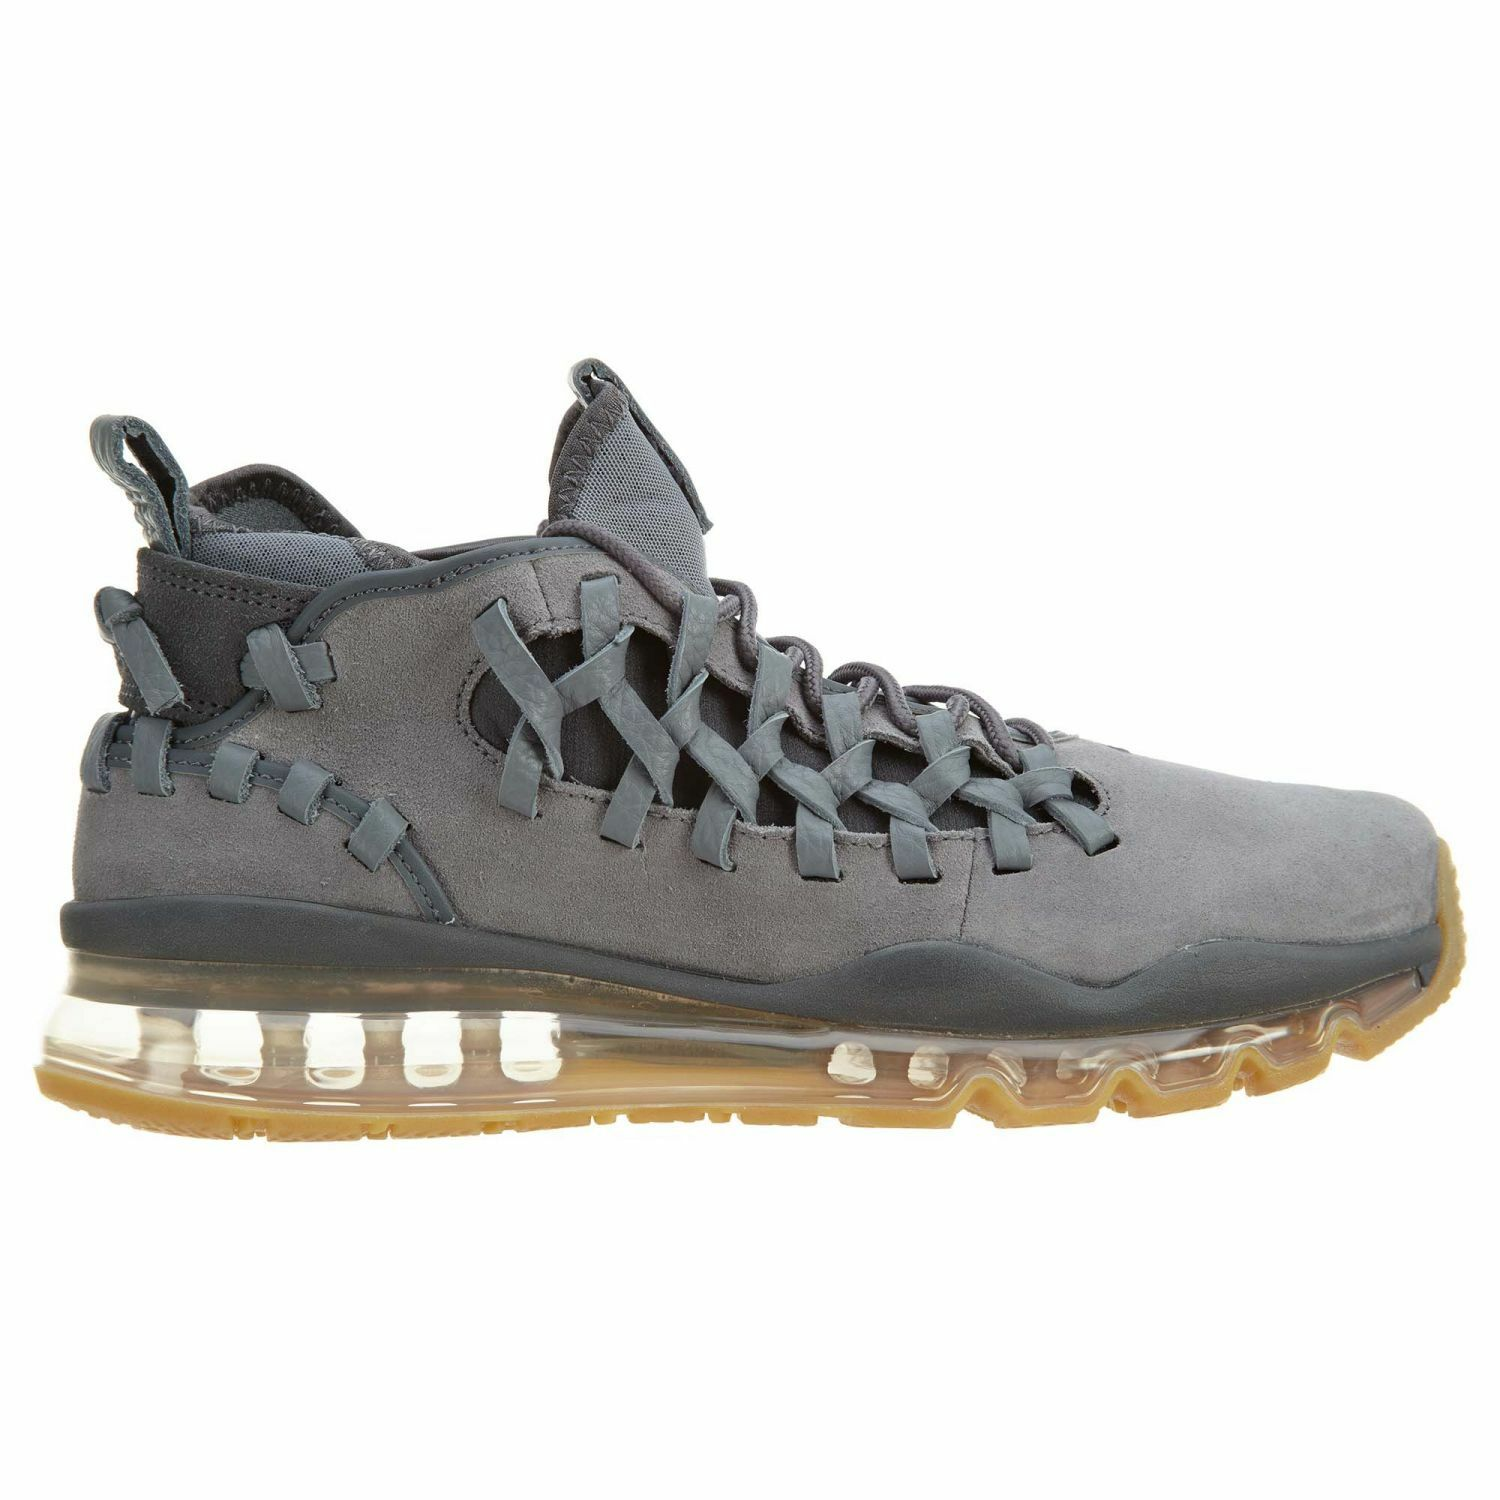 Nike Air Max TR17 Uomo 880996-002 Cool Dark Grey Gum Running Shoes Size 9.5